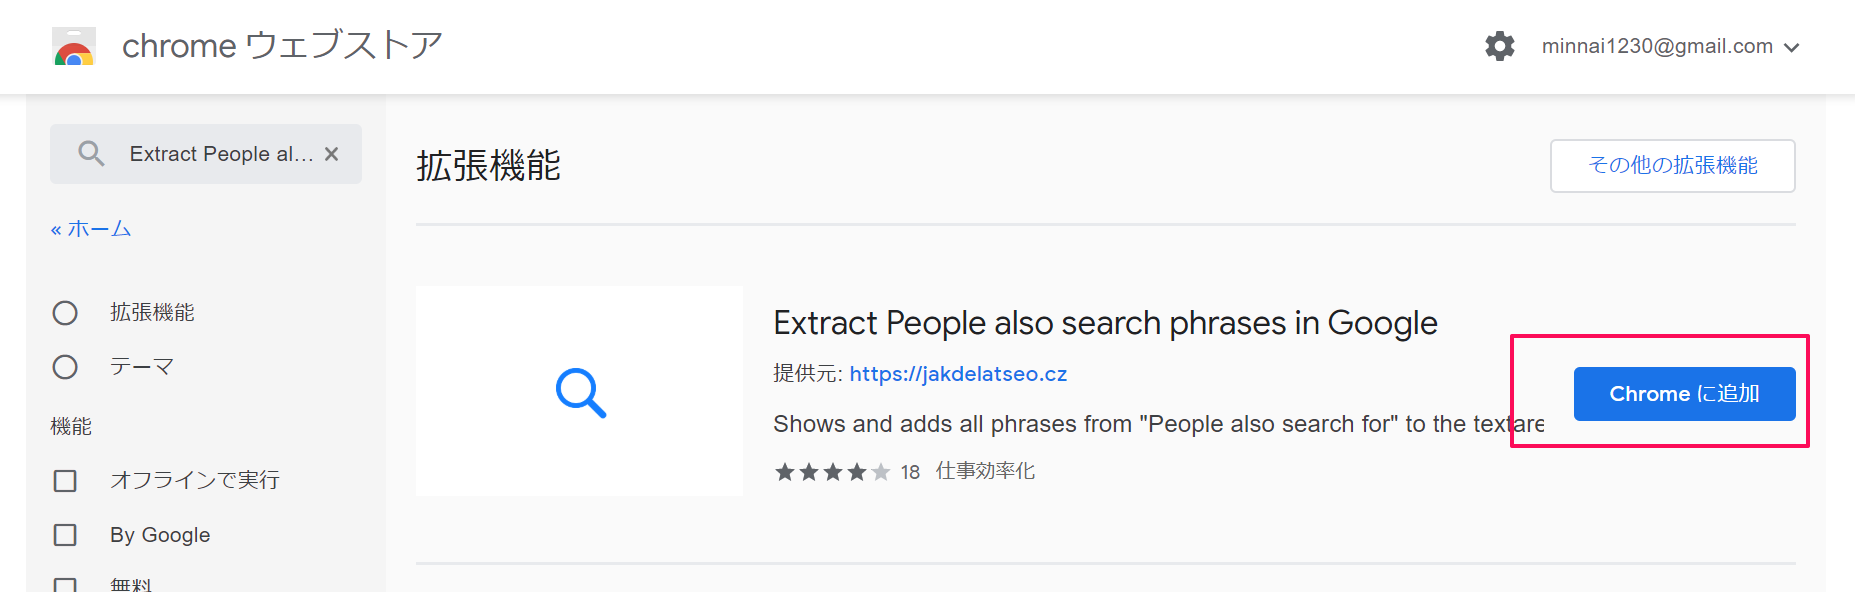 Extract People also search phrases in Google